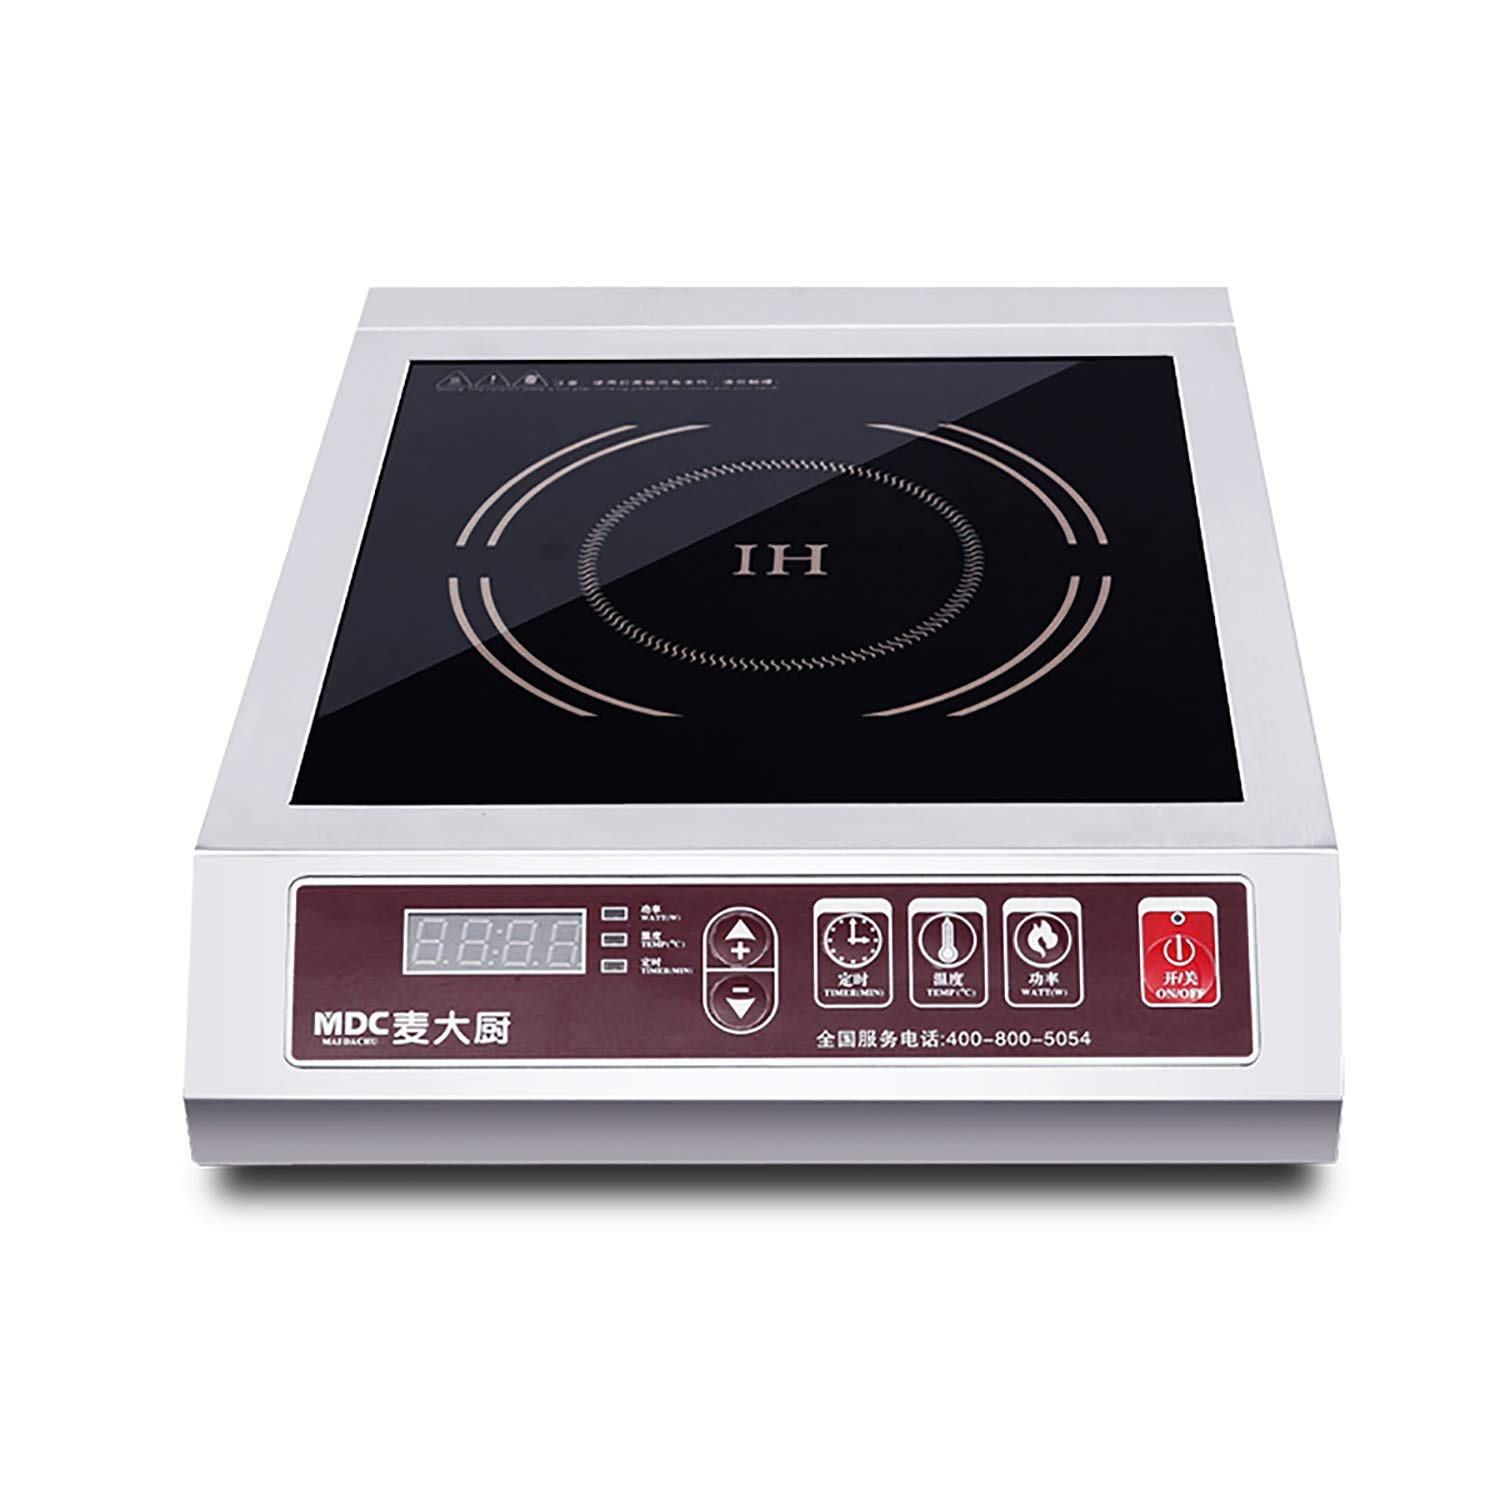 Larger 9 coil to handle larger cookware Stainless-steel body 10 temperature levels 100/° - 464/°F Aervoe Industries 6535 Max Burton Digital ProChef-3000 Induction Cooktop